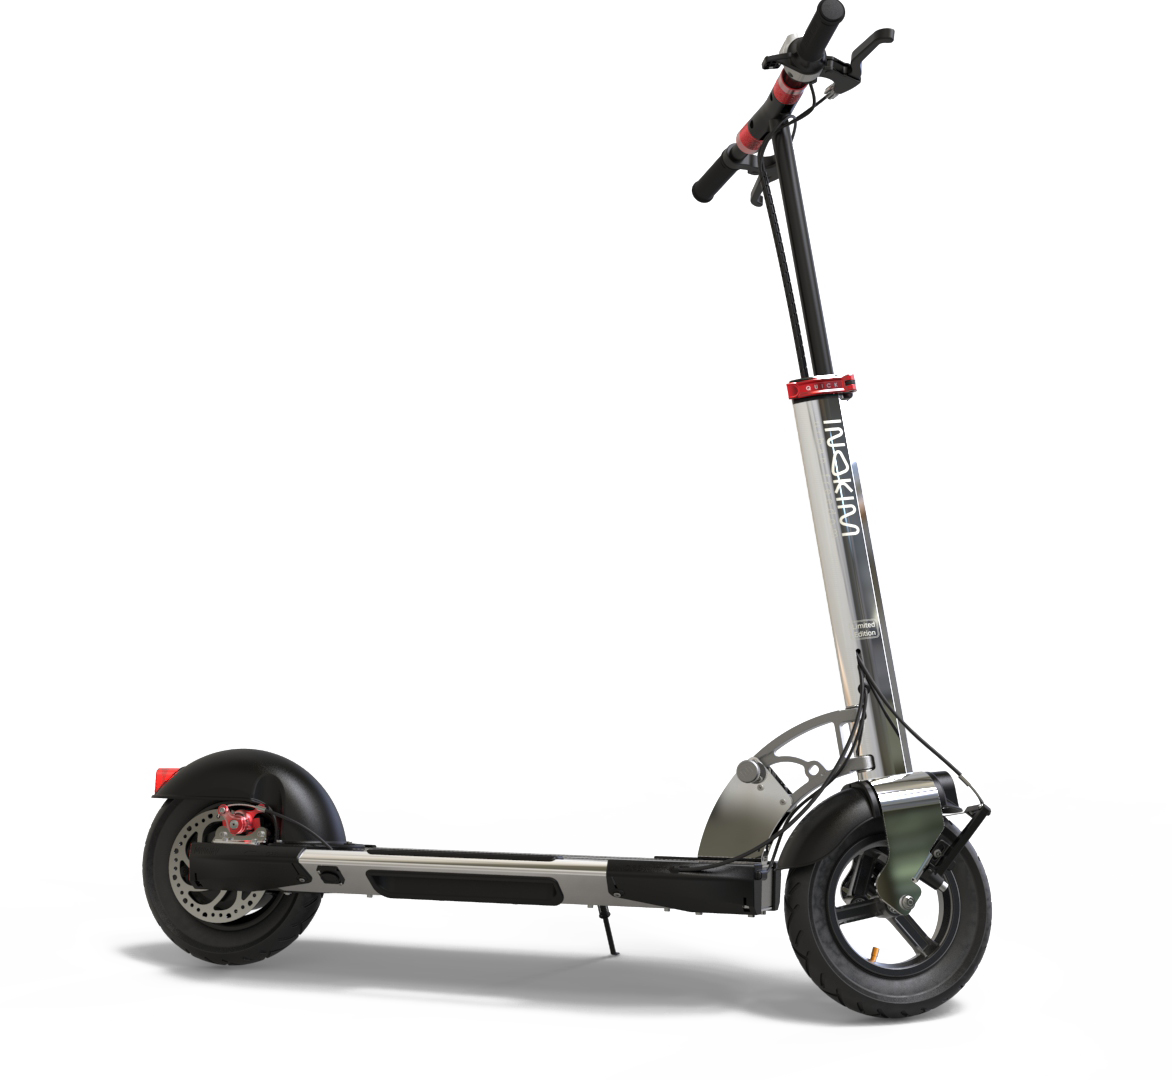 The limited edition INOKIM Quick 3 chrome electric scooter